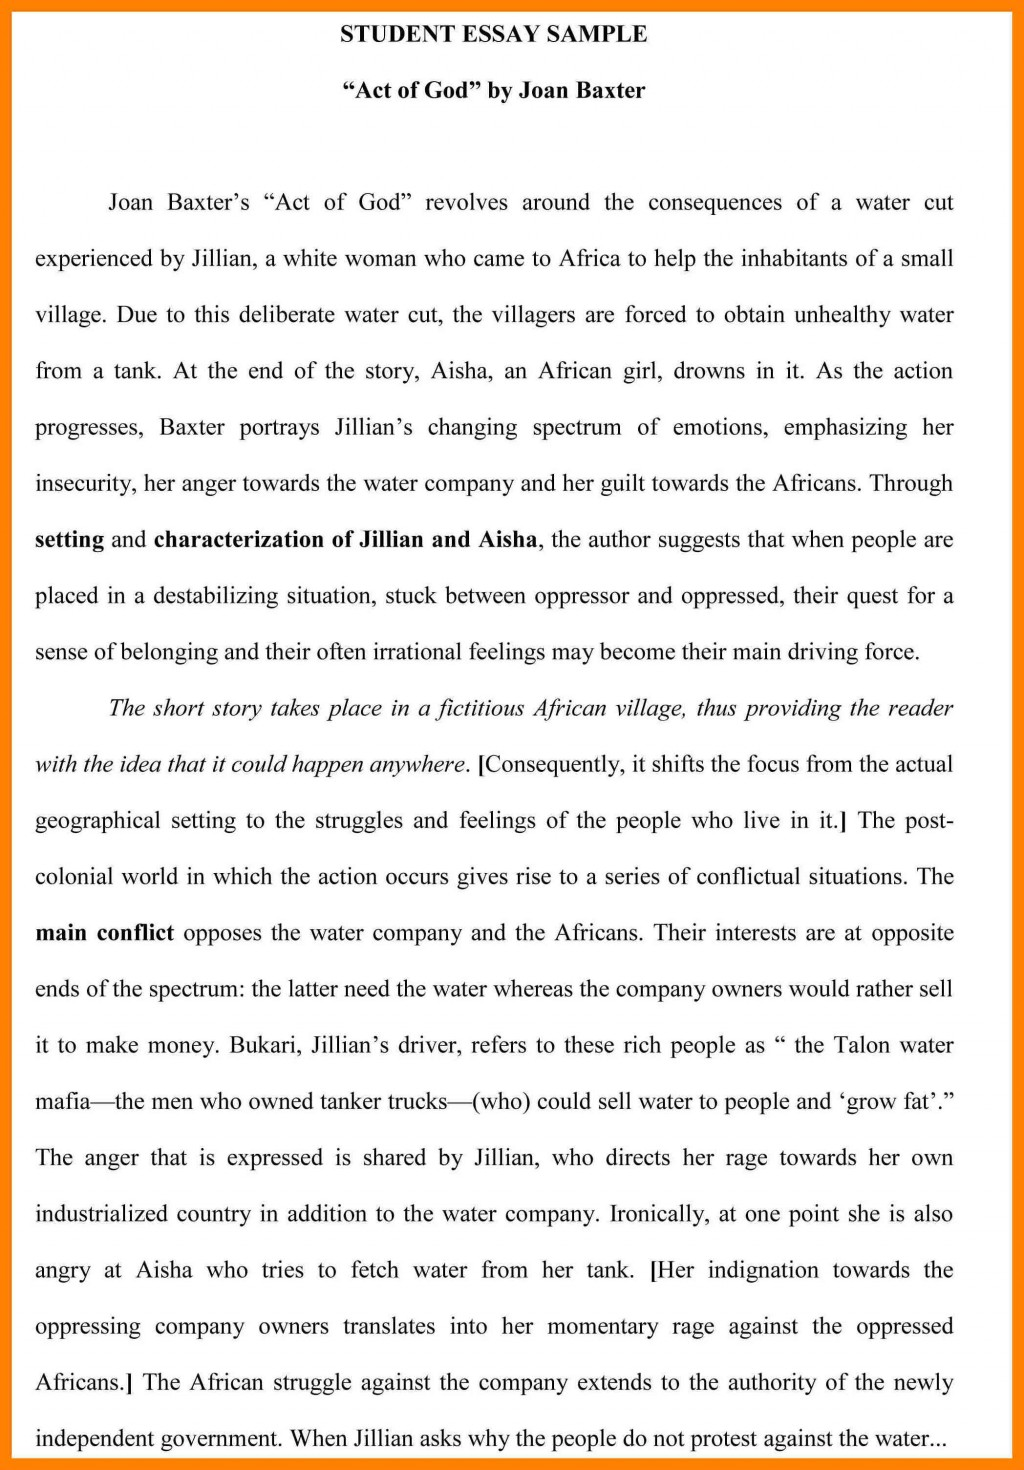 001 Sample Math Test Act Elmifermetures Com Ideas Collection Essay Awesome Of Livesto Essays Pdf New Topics Wonderful Writing Large